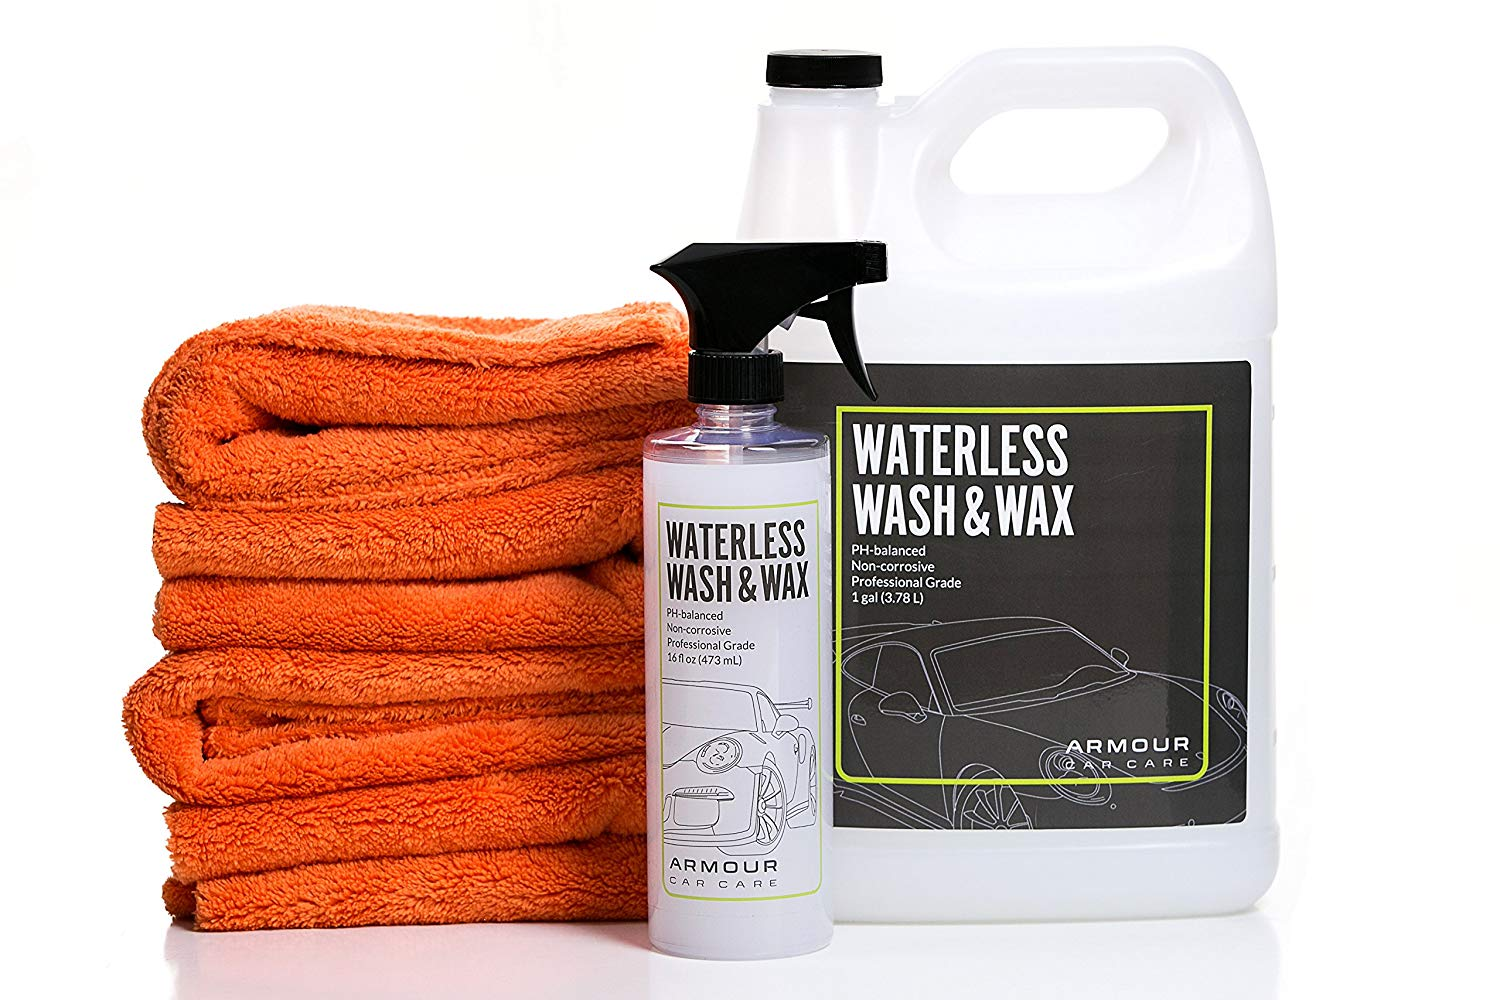 Armour Car Care Dry Shine Waterless Car Wash & Wax 6 Piece Bundle | 4 Ultra Plush Microfiber Towels | 1 (16 oz) wash spray bottle and 1 (1 gal) refill of Waterless Carwash & Wax